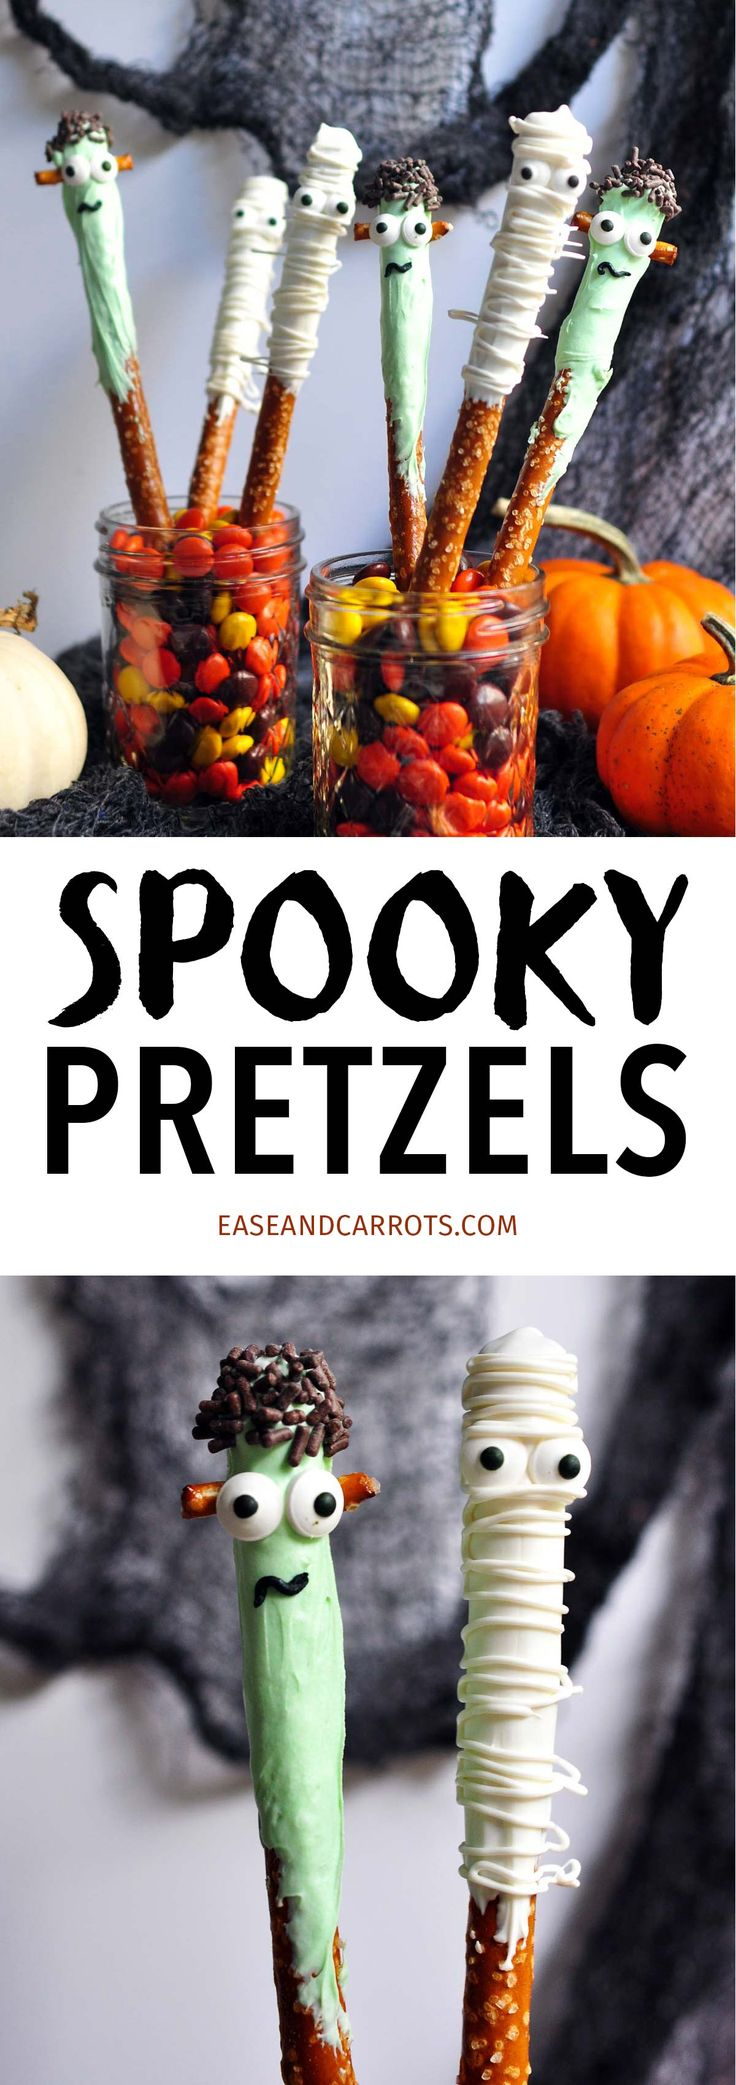 Spooky Pretzels Recipe. Freakishly adorable pretzel rods decorated as Frankenstein and mummies for your upcoming Halloween festivities!